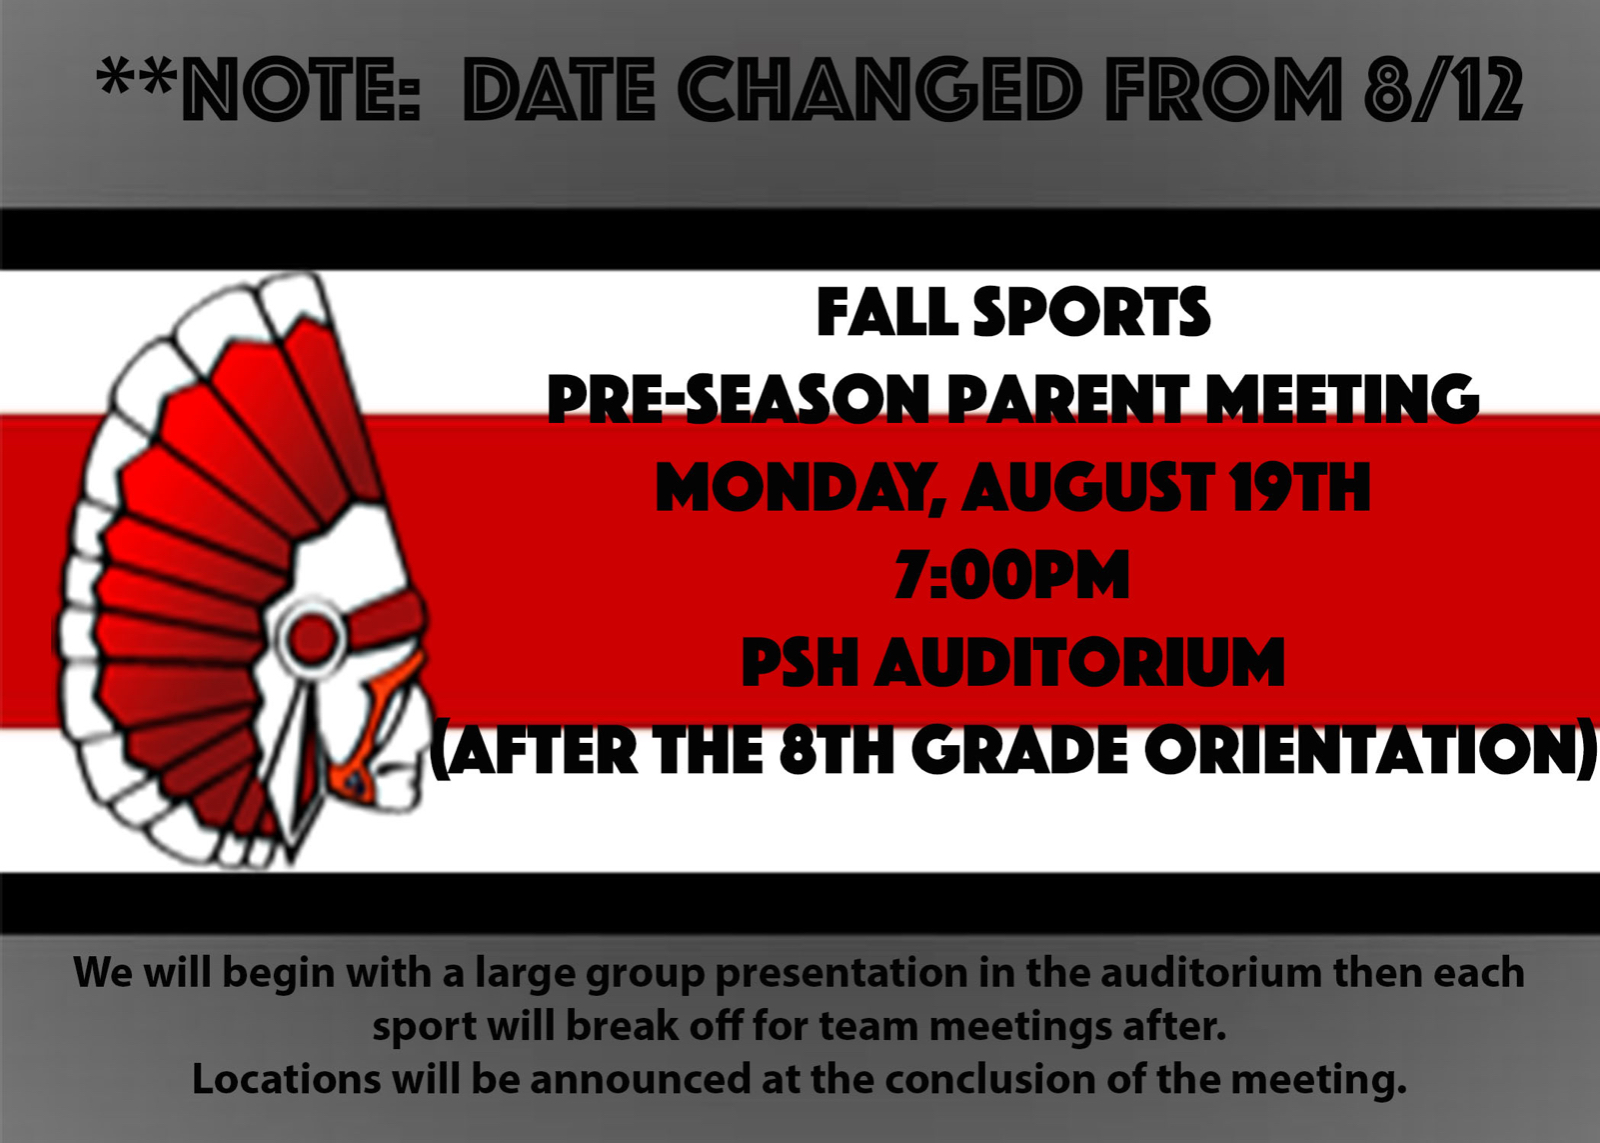 Fall Sports Parent Meeting is Monday 8/19 at 7pm after 8th grade Orientation